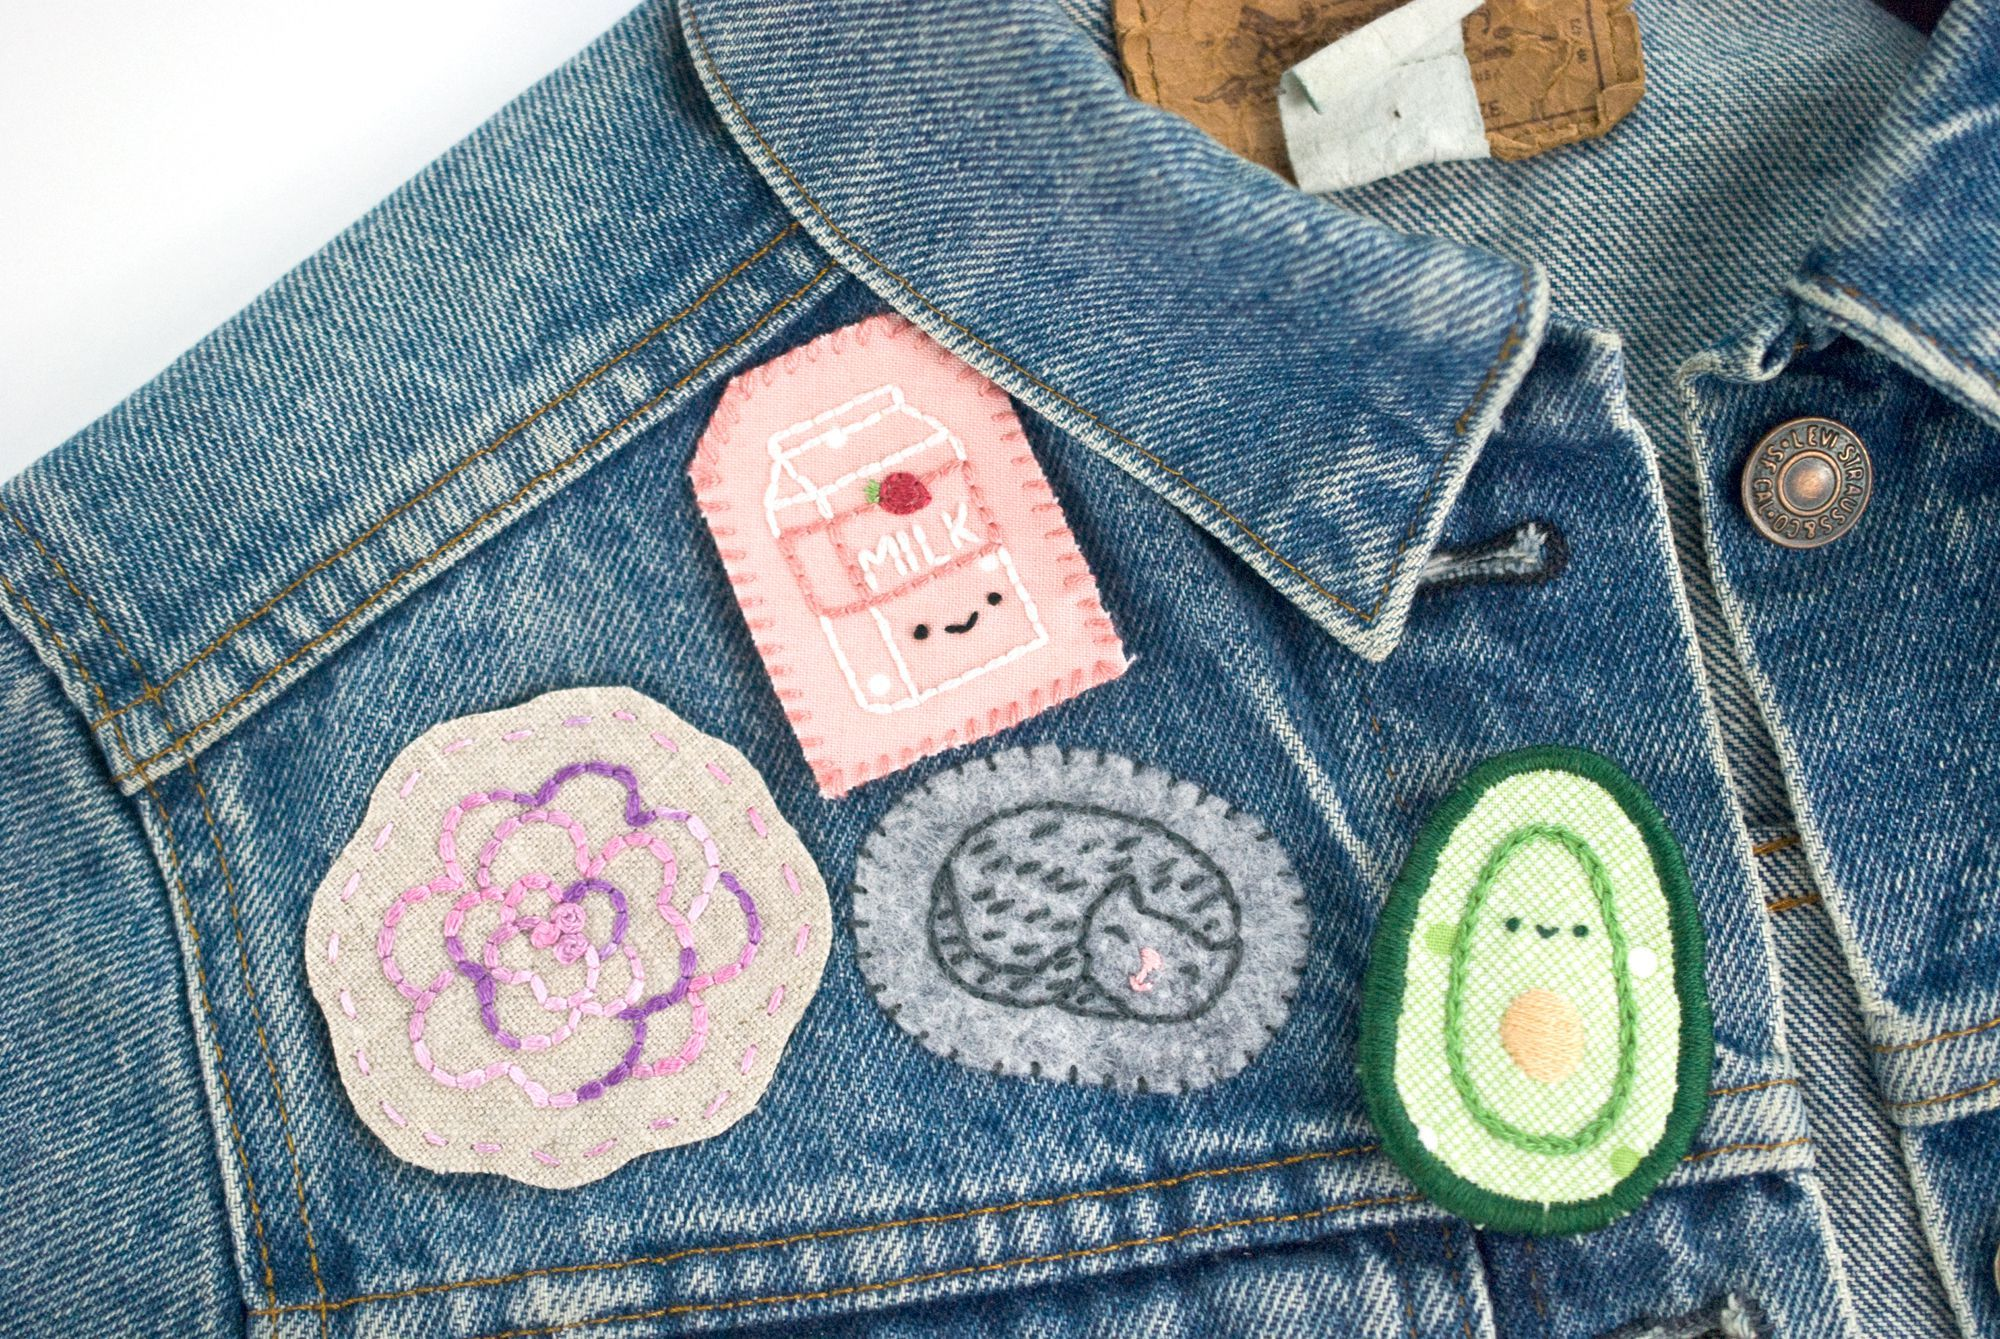 4 Ways To Make Your Own Hand Embroidered Patches Embroidered Patch Diy Embroidery Stitches Tutorial Diy Patches Embroidery